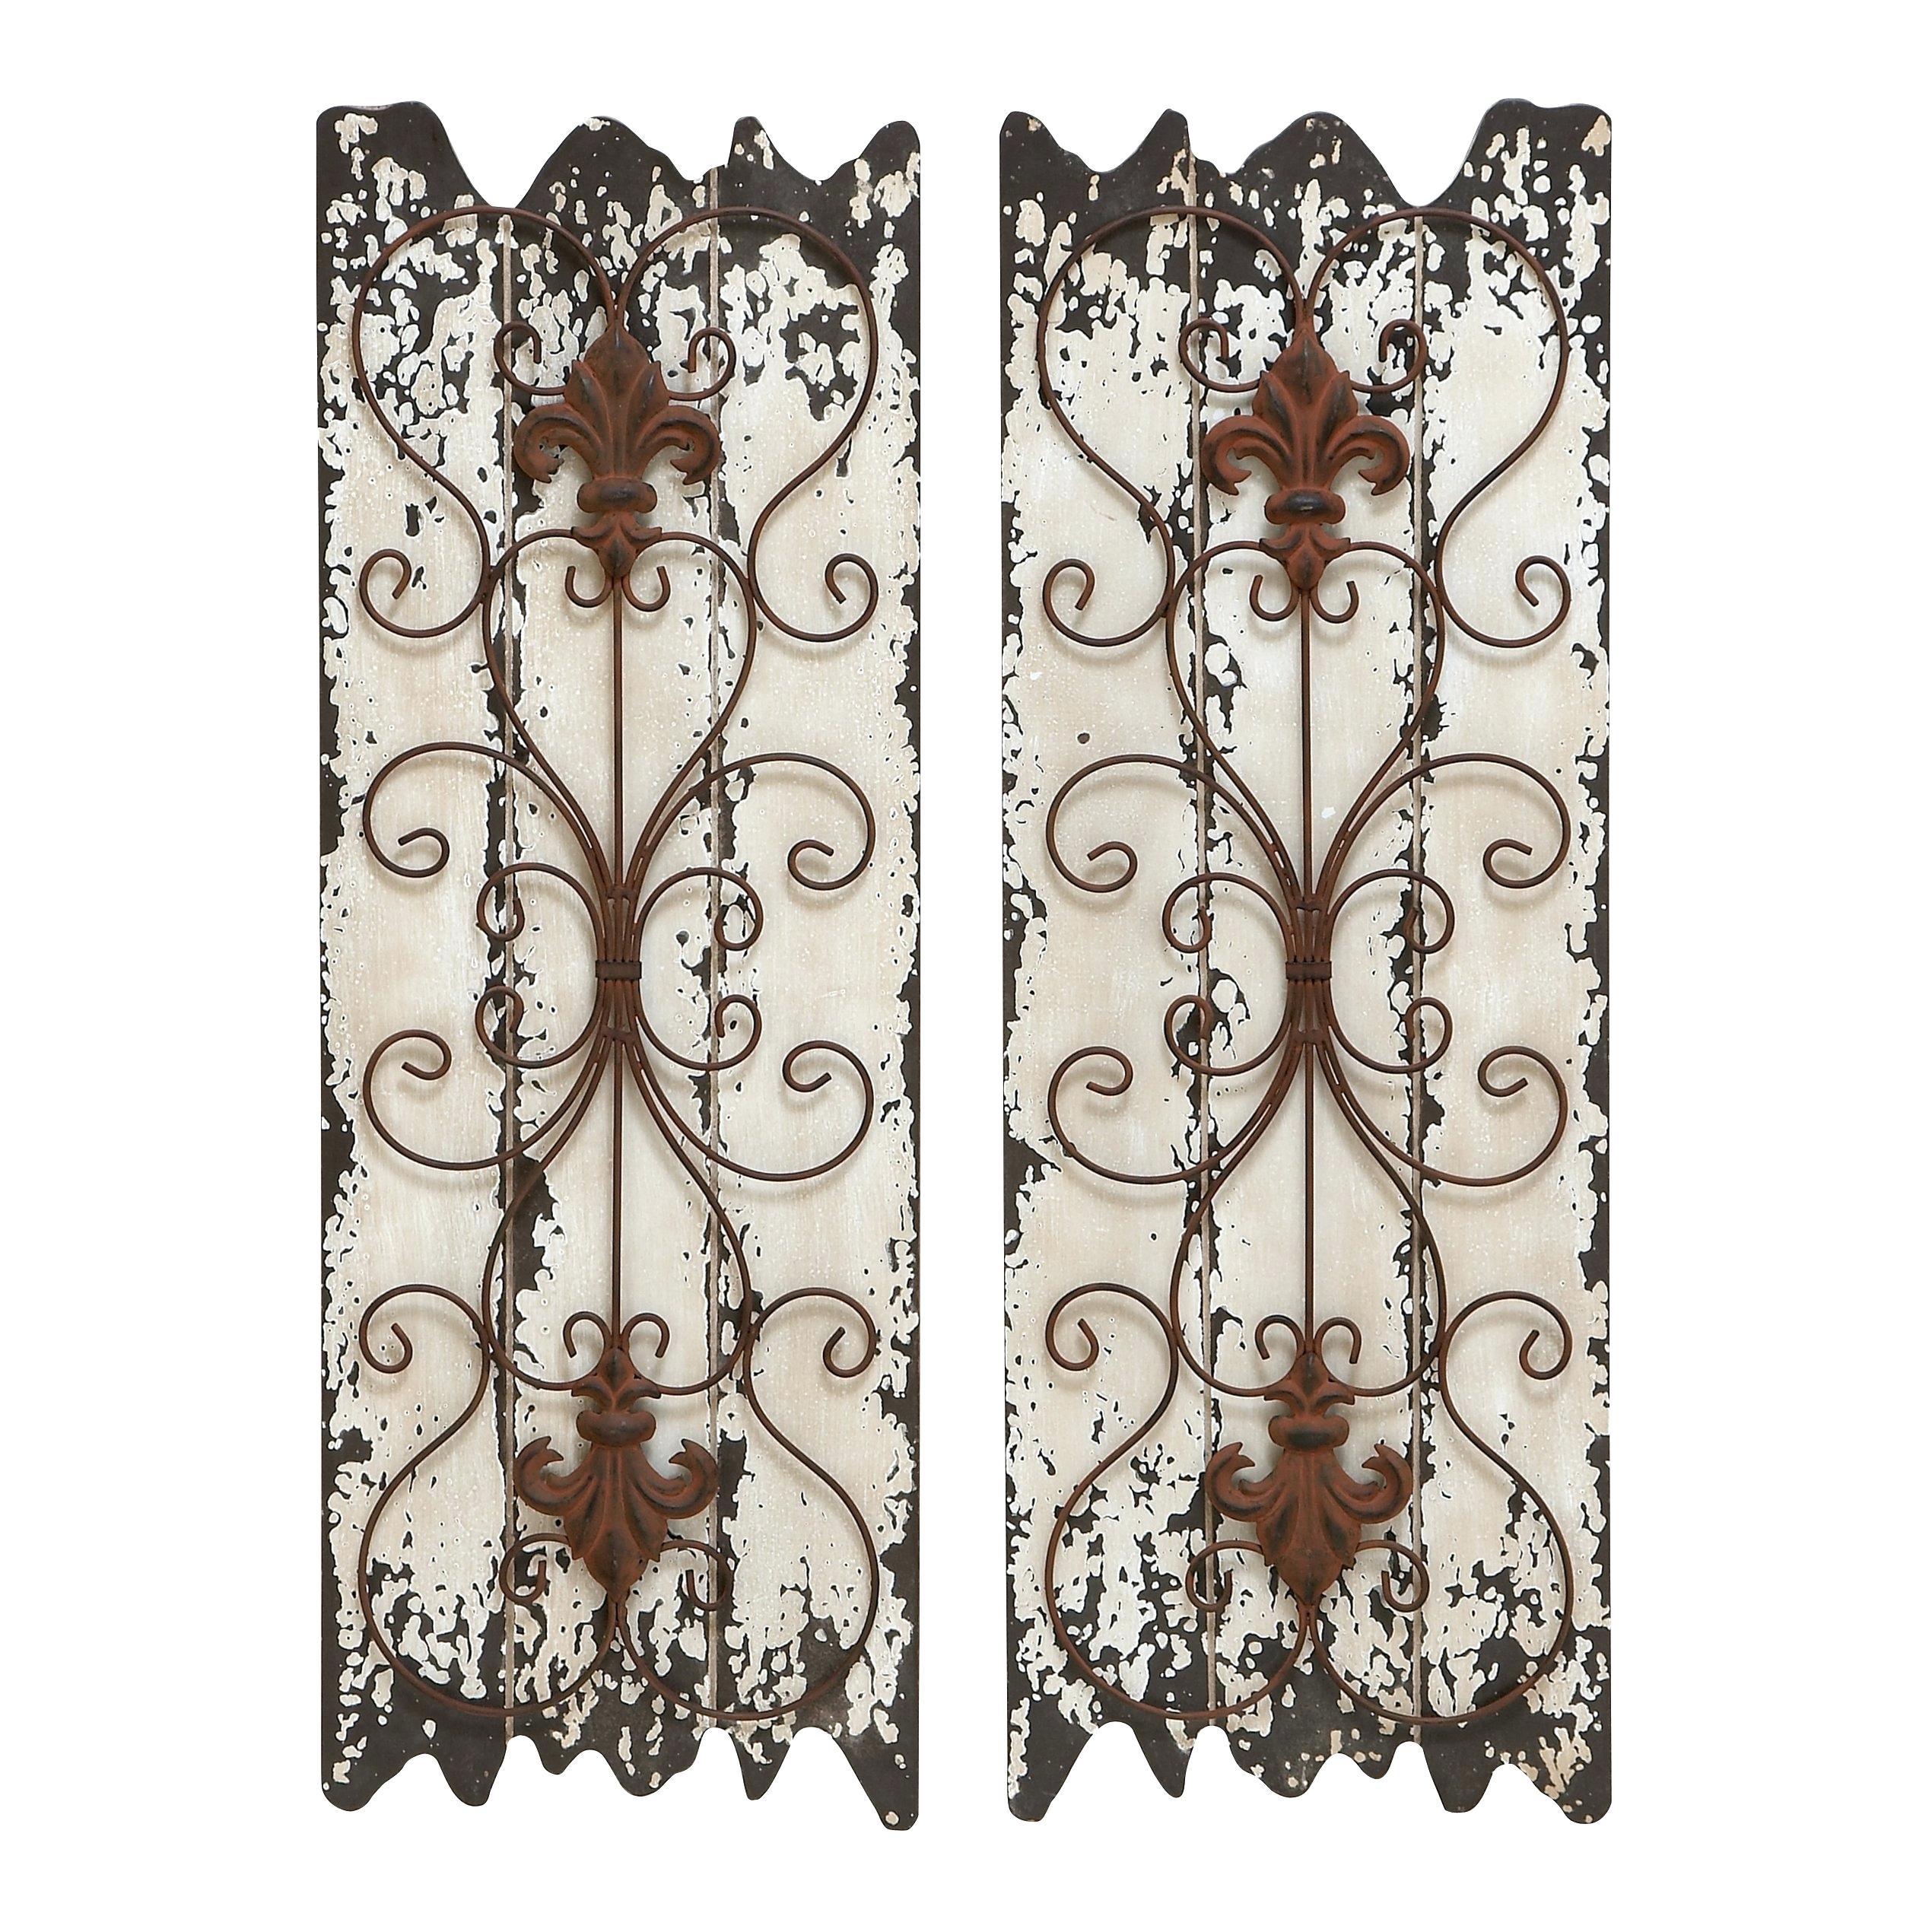 Wall Decor Sets Intended For 2 Piece Panel Wood Wall Decor Sets (set Of 2) (View 5 of 30)